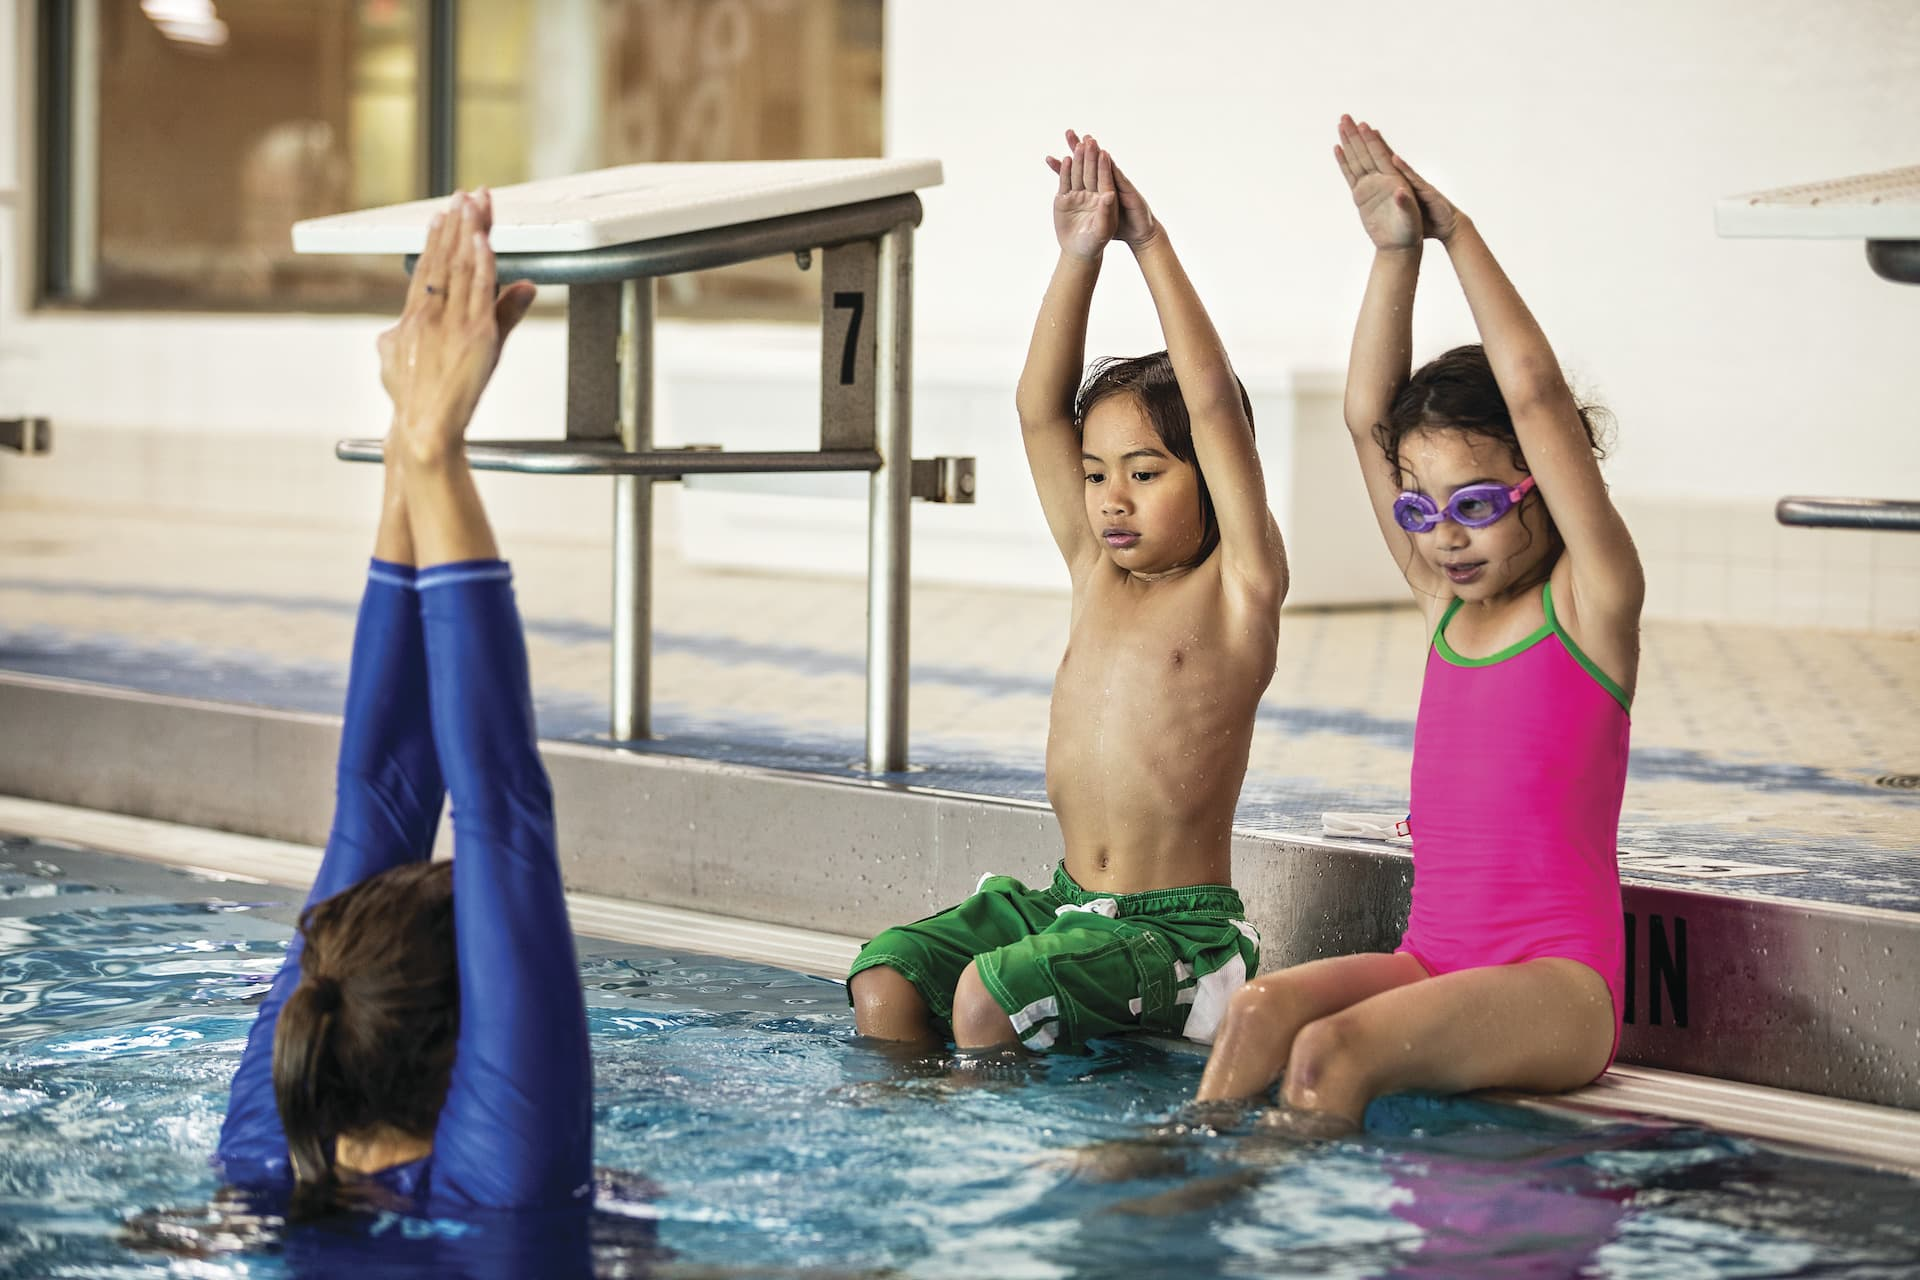 Children practicing diving technique on pool edge while instructor shows them the proper technique.